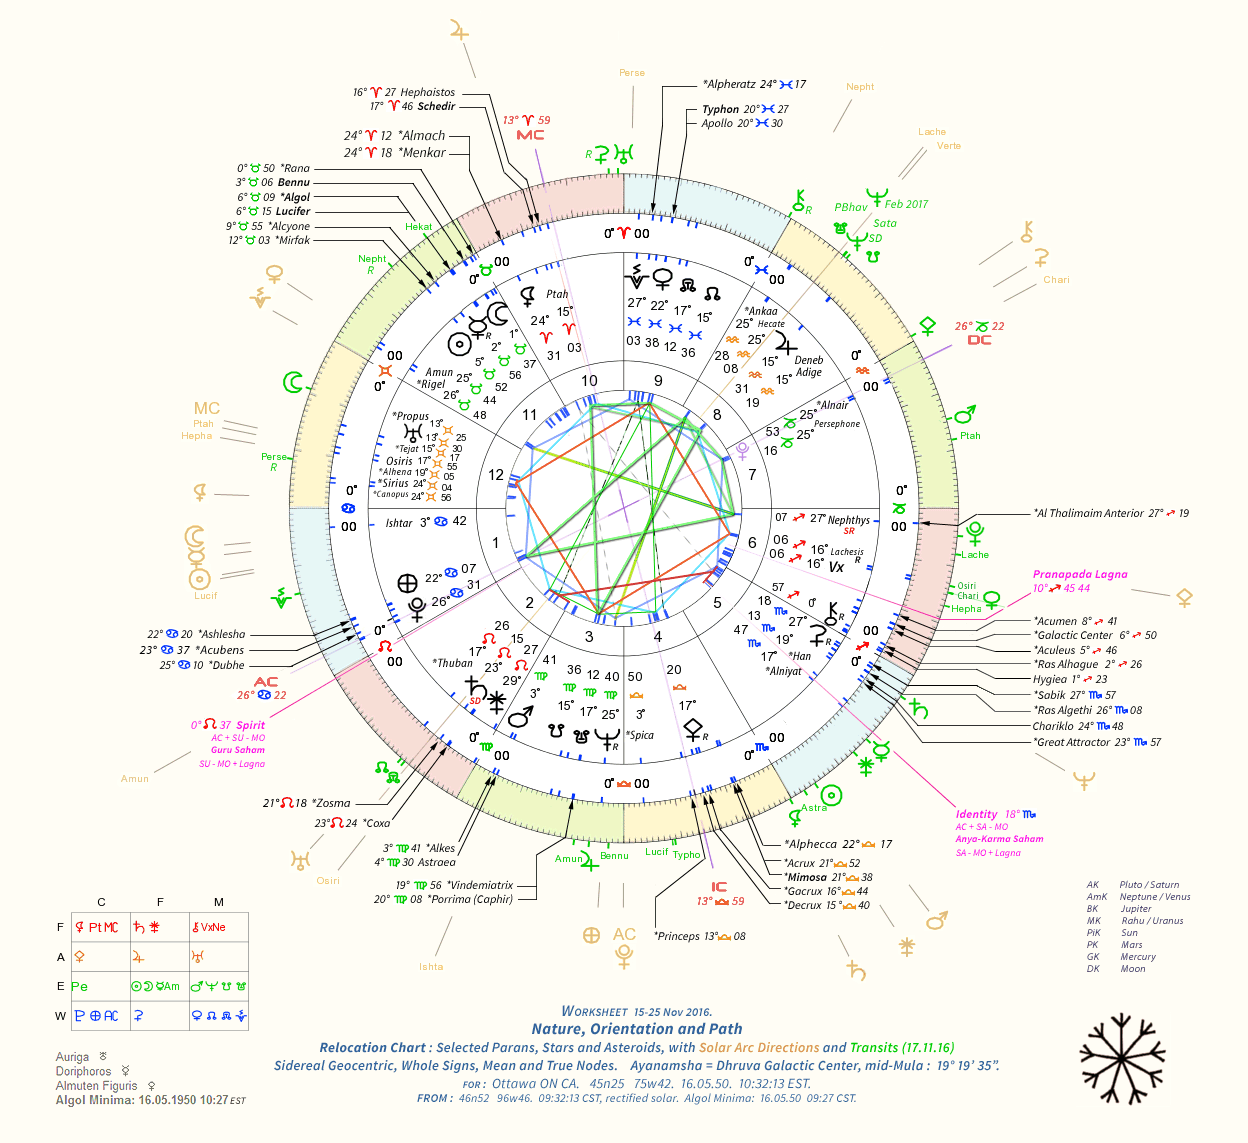 Worksheet 15-30 November 2016. Nature, Orientation, and Path. Comprehensive relocation Chart for Ottawa ON CA, with solar  arc directions and transits.